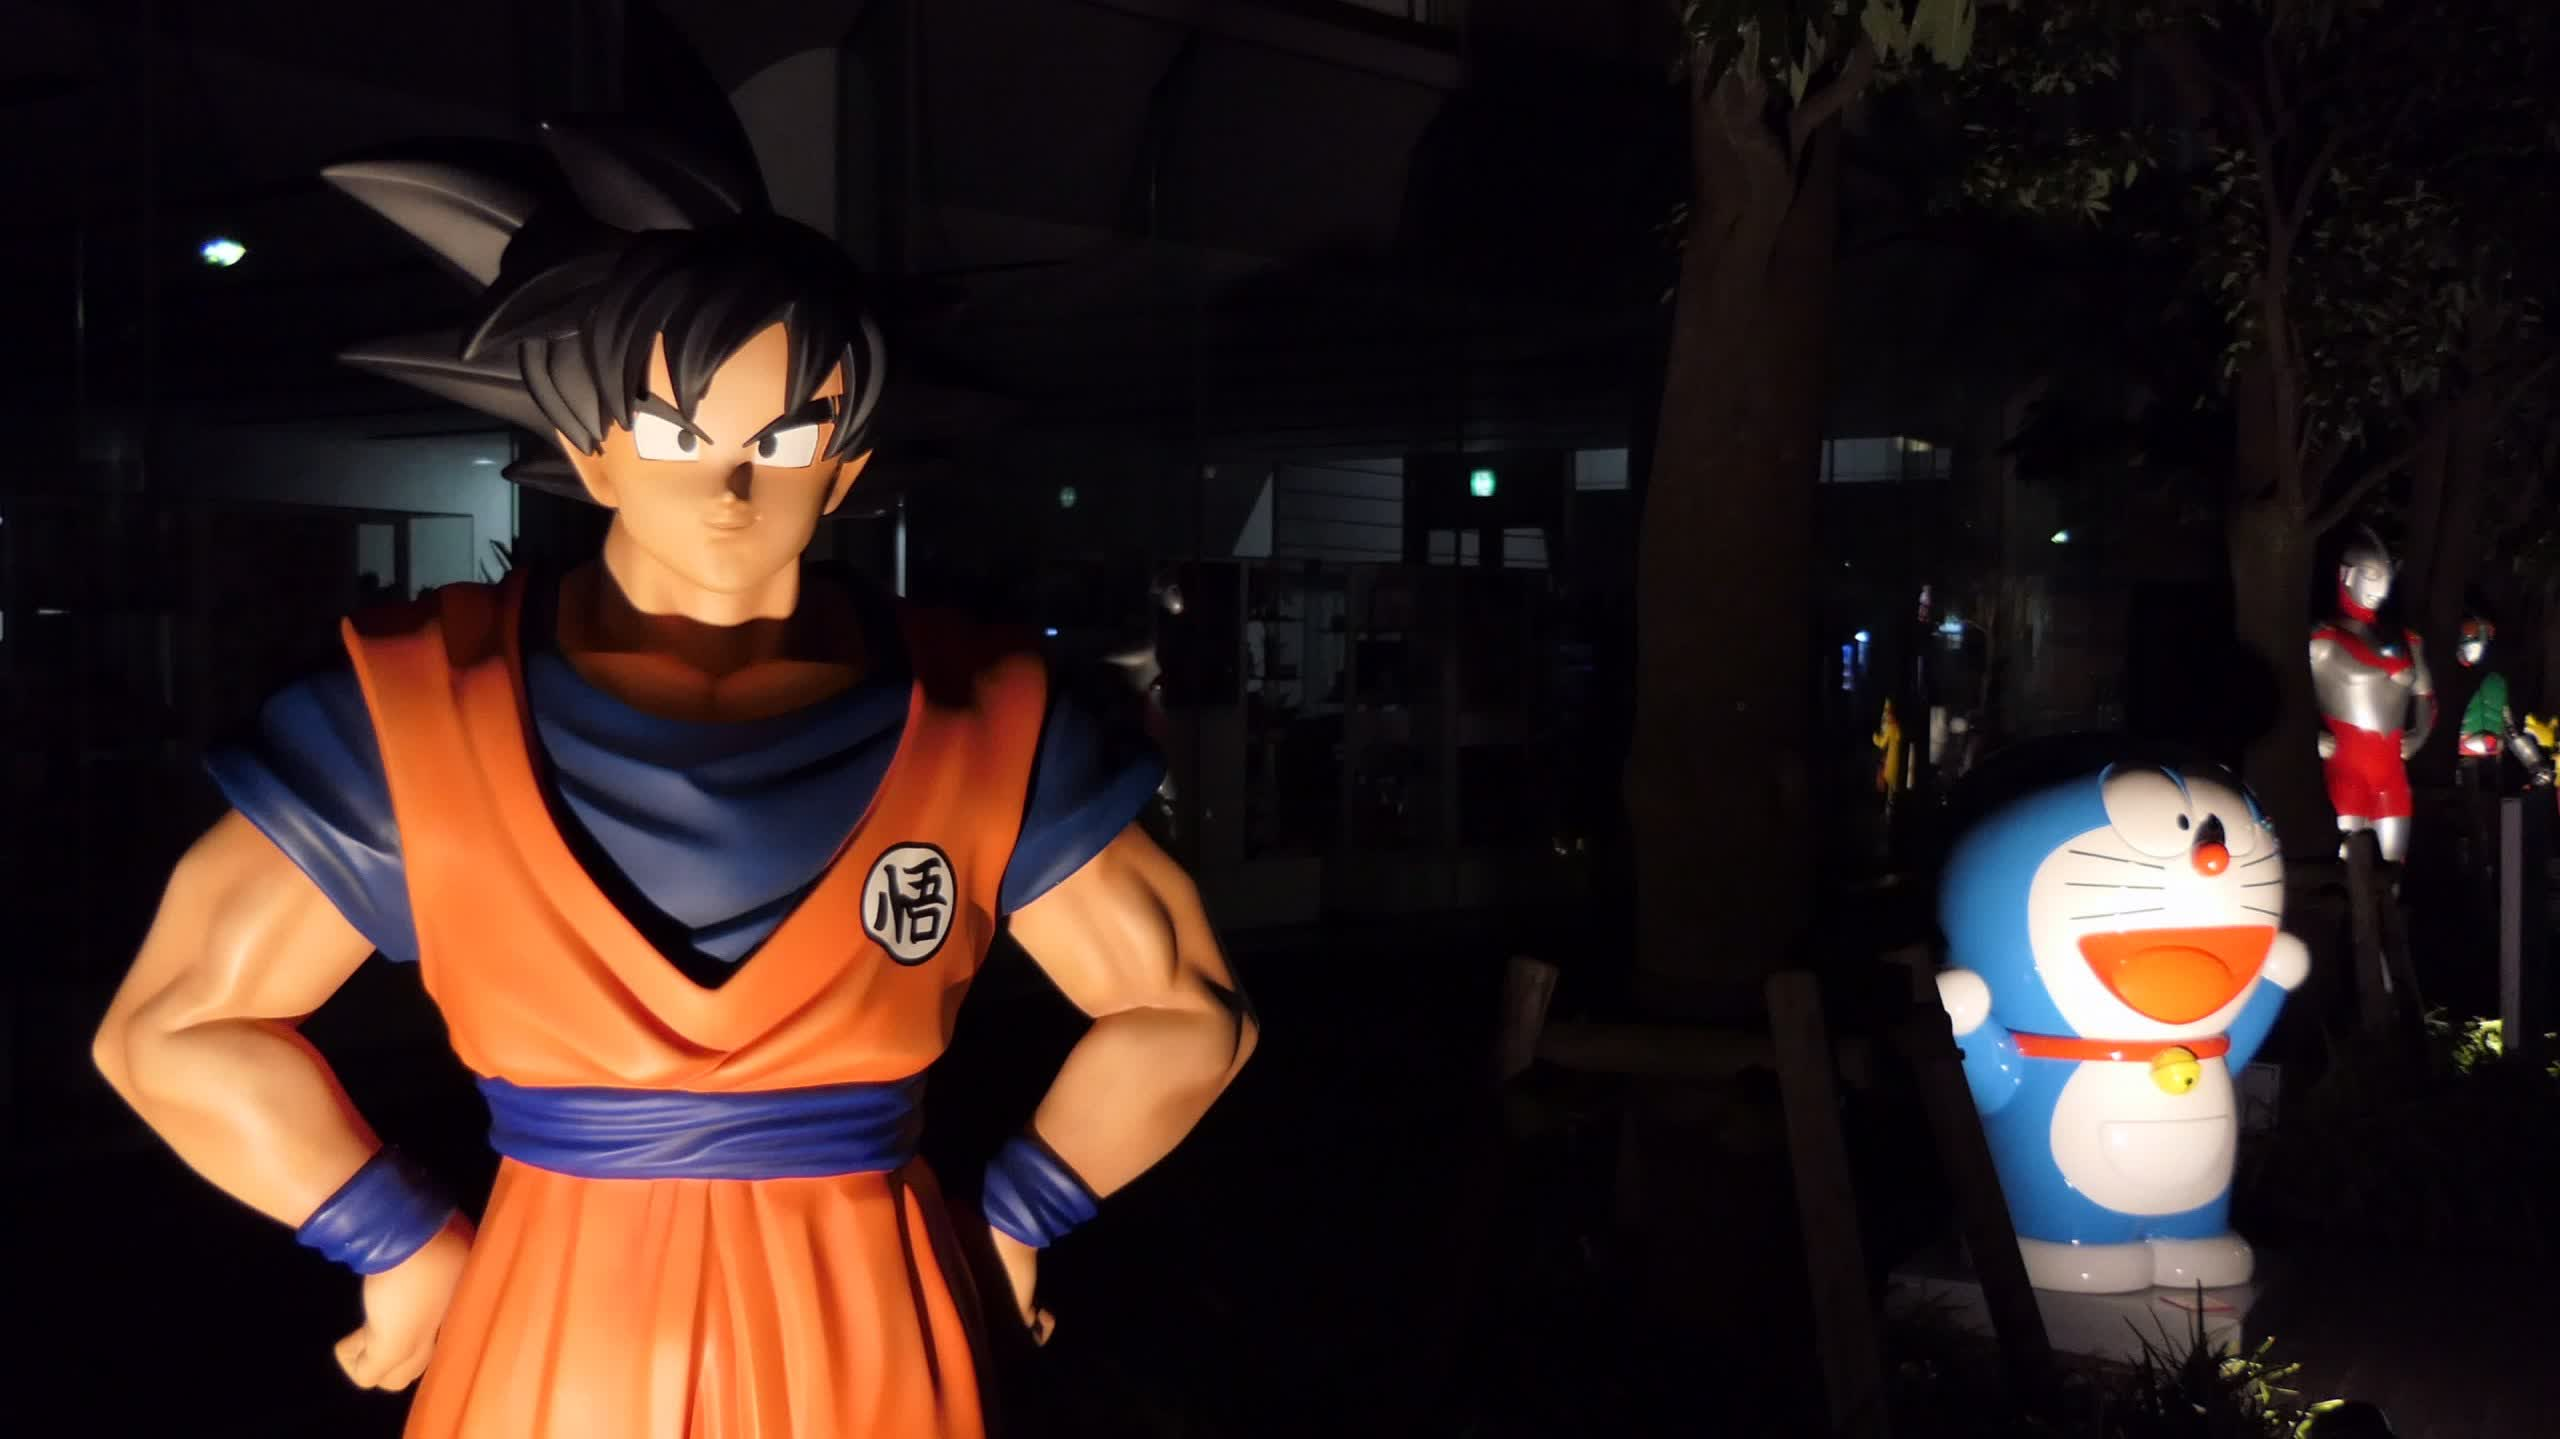 Bandai Namco is rebranding itself next year; fans don't care for the change